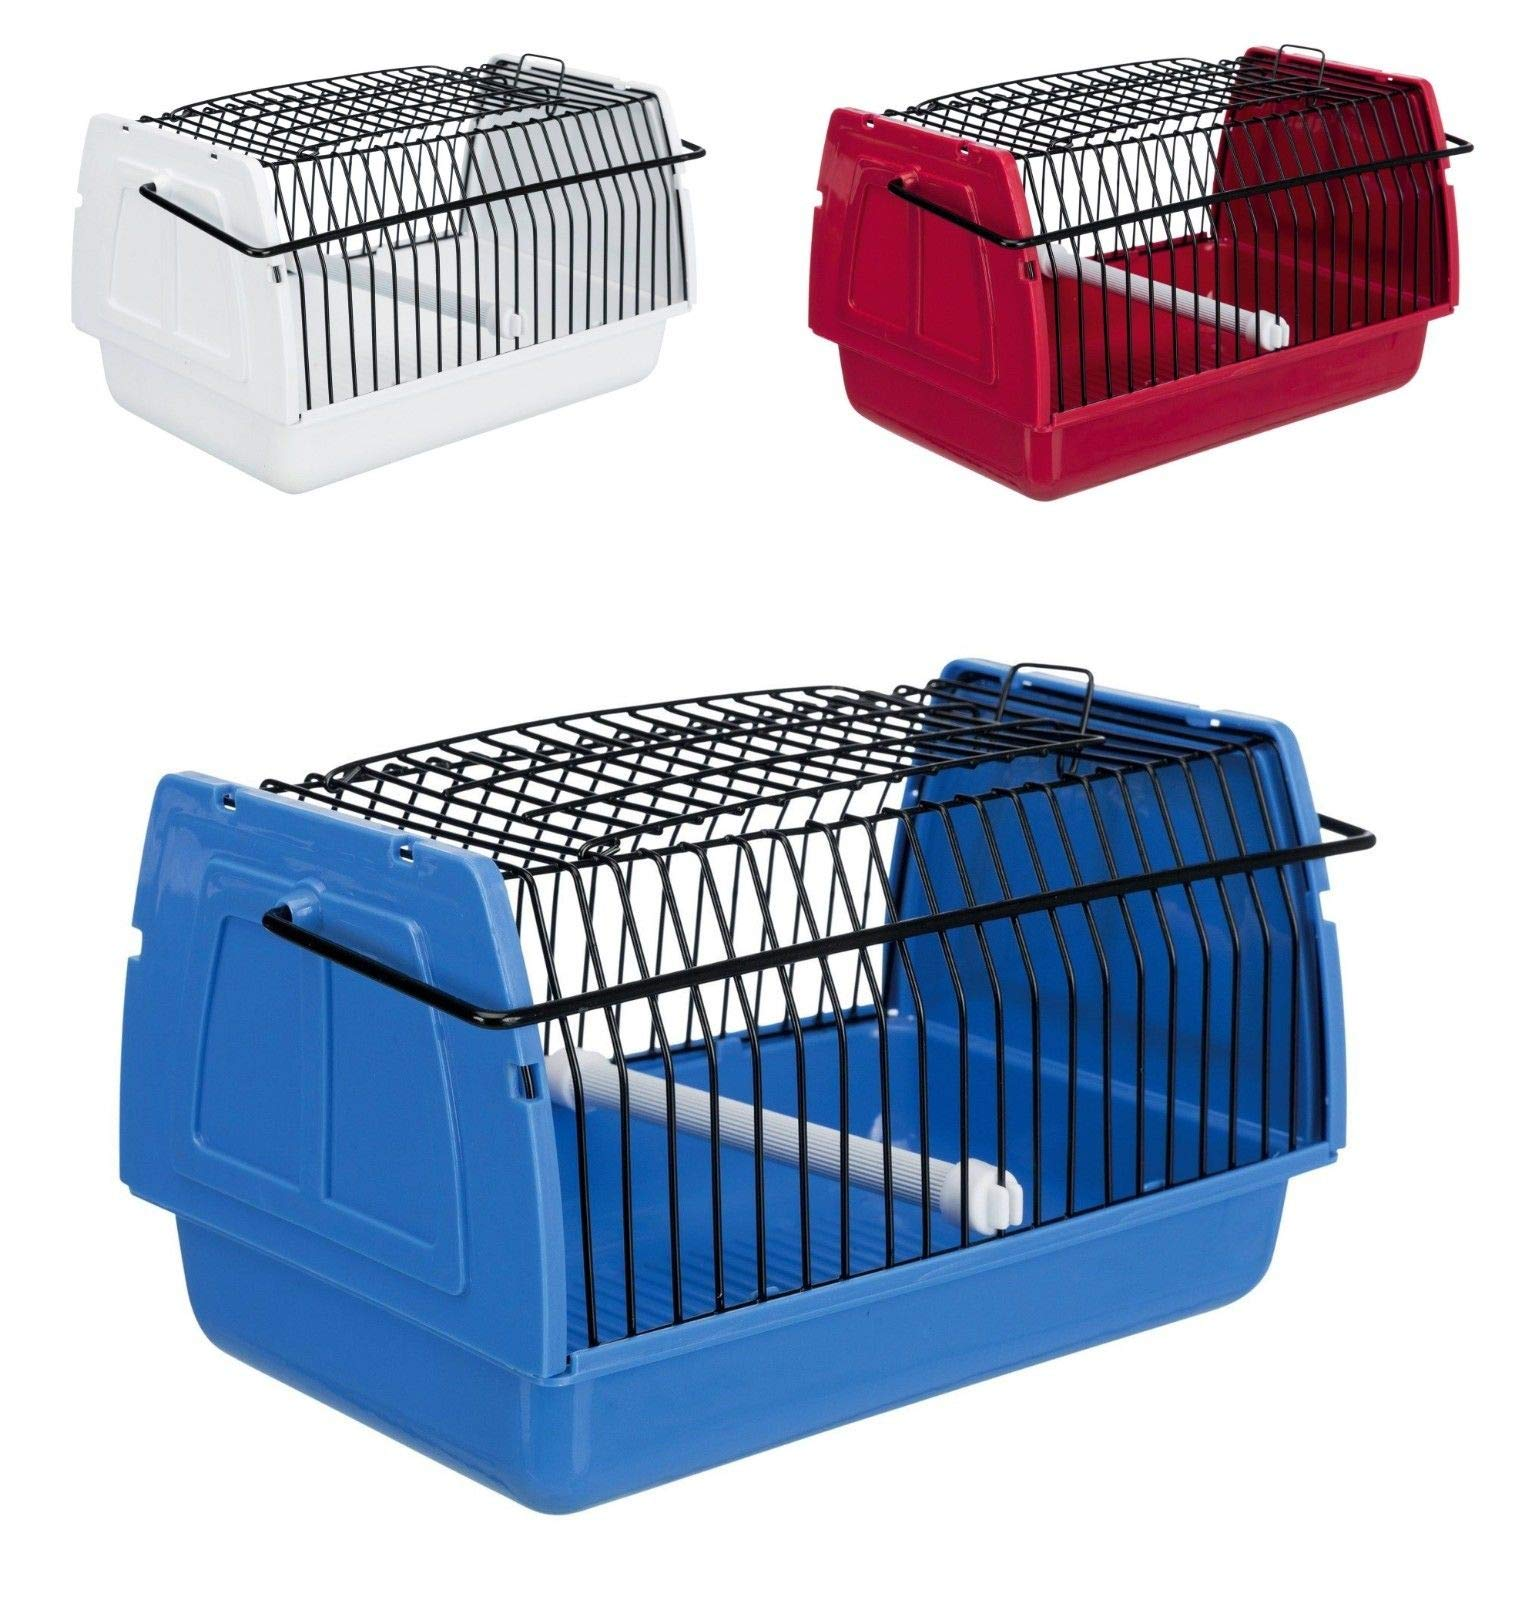 Trixie Transport Box For Small Birds And Small Animals by Trixie